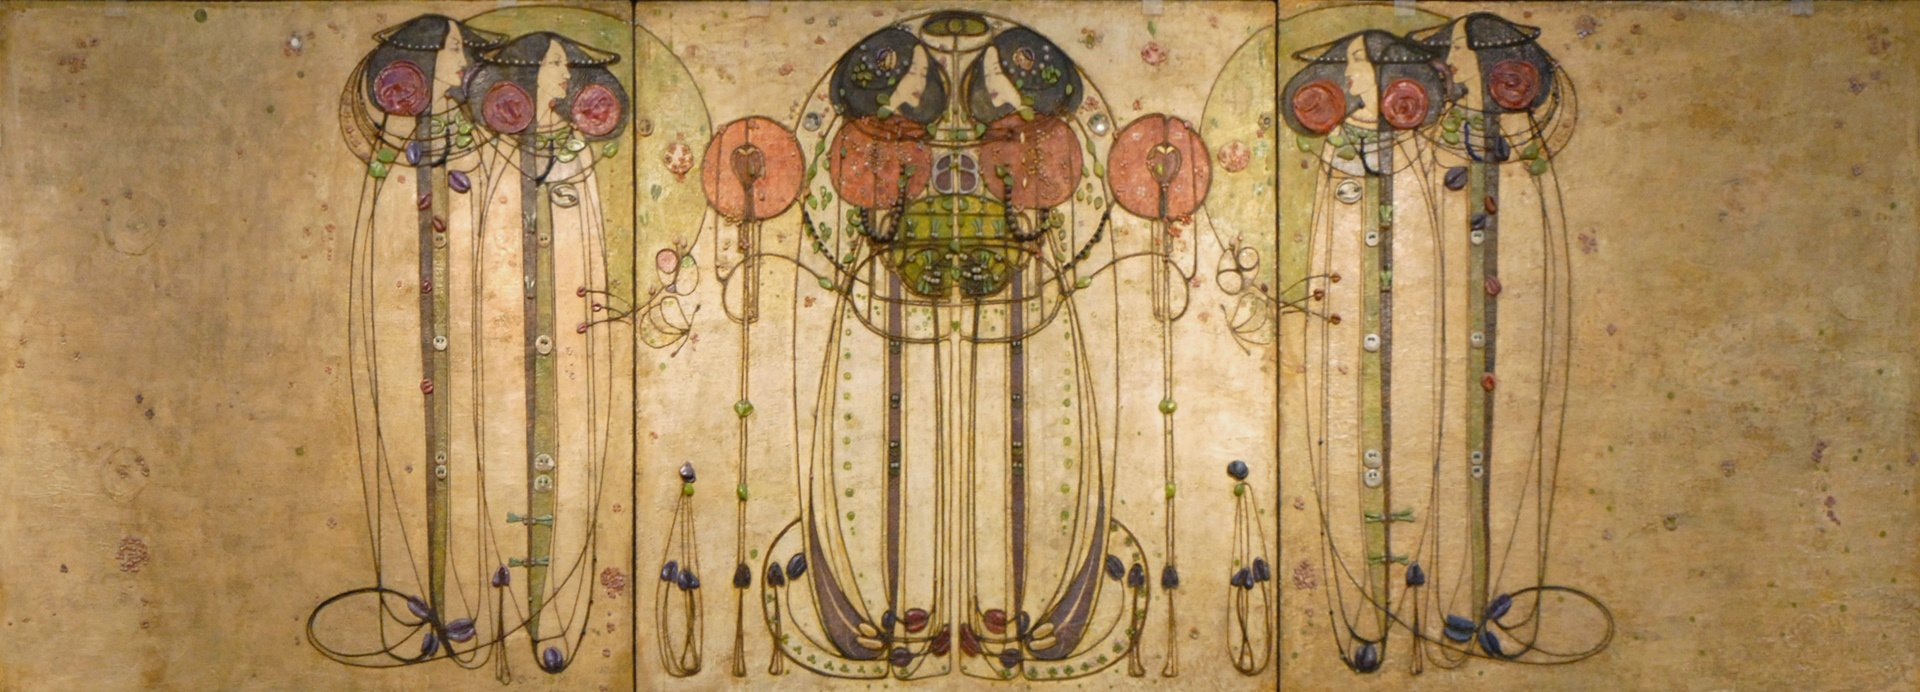 the wassail de charles rennie mackintosh glasgow flickr photo sharing. Black Bedroom Furniture Sets. Home Design Ideas